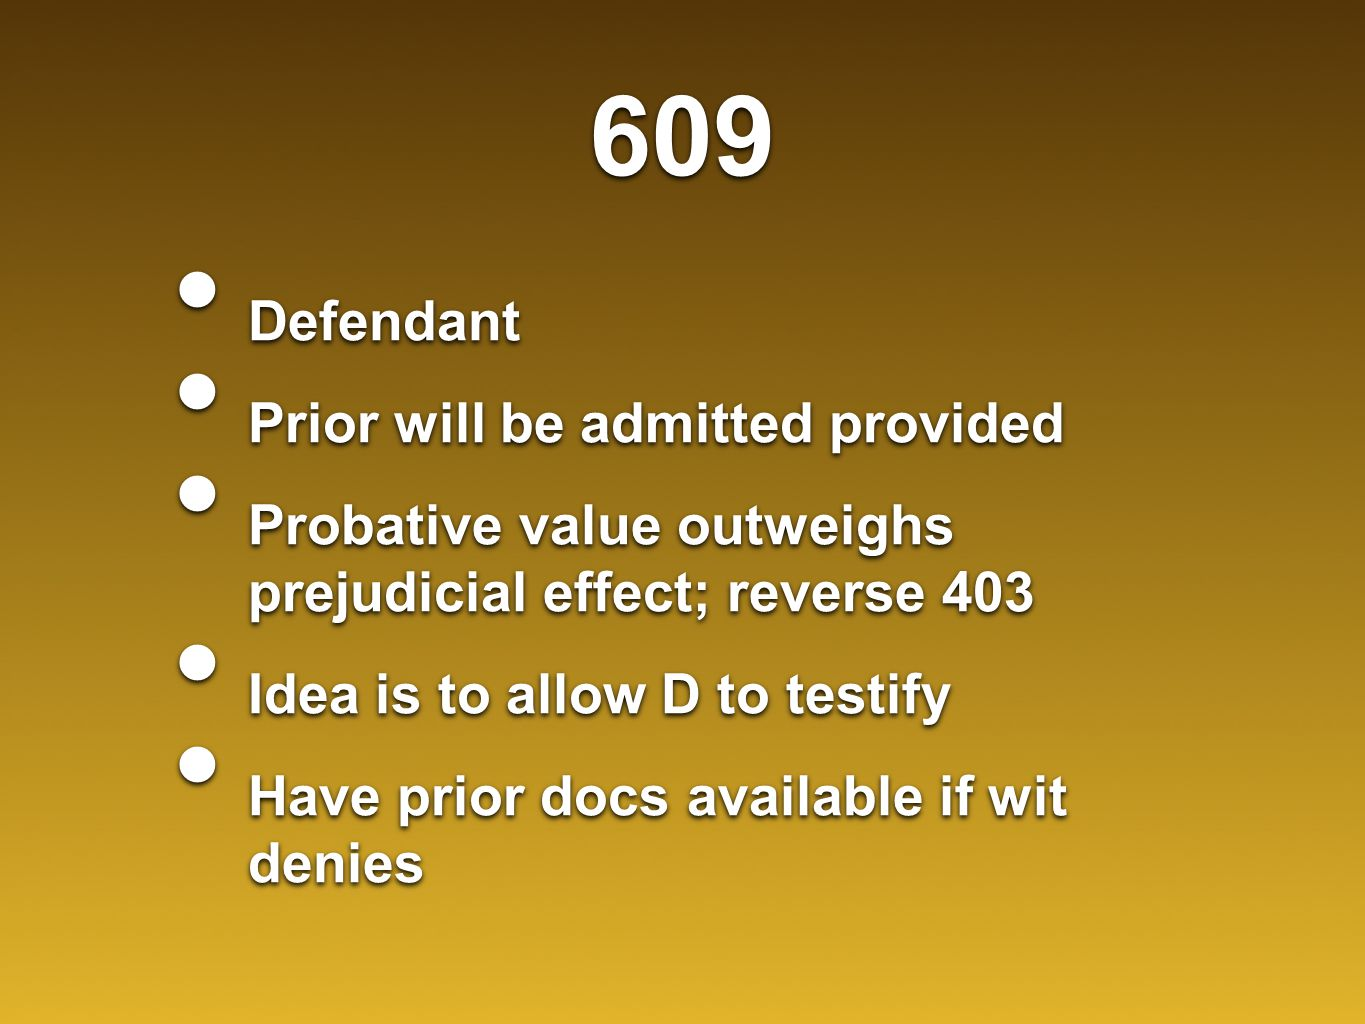 609 Defendant Prior will be admitted provided Probative value outweighs prejudicial effect; reverse 403 Idea is to allow D to testify Have prior docs